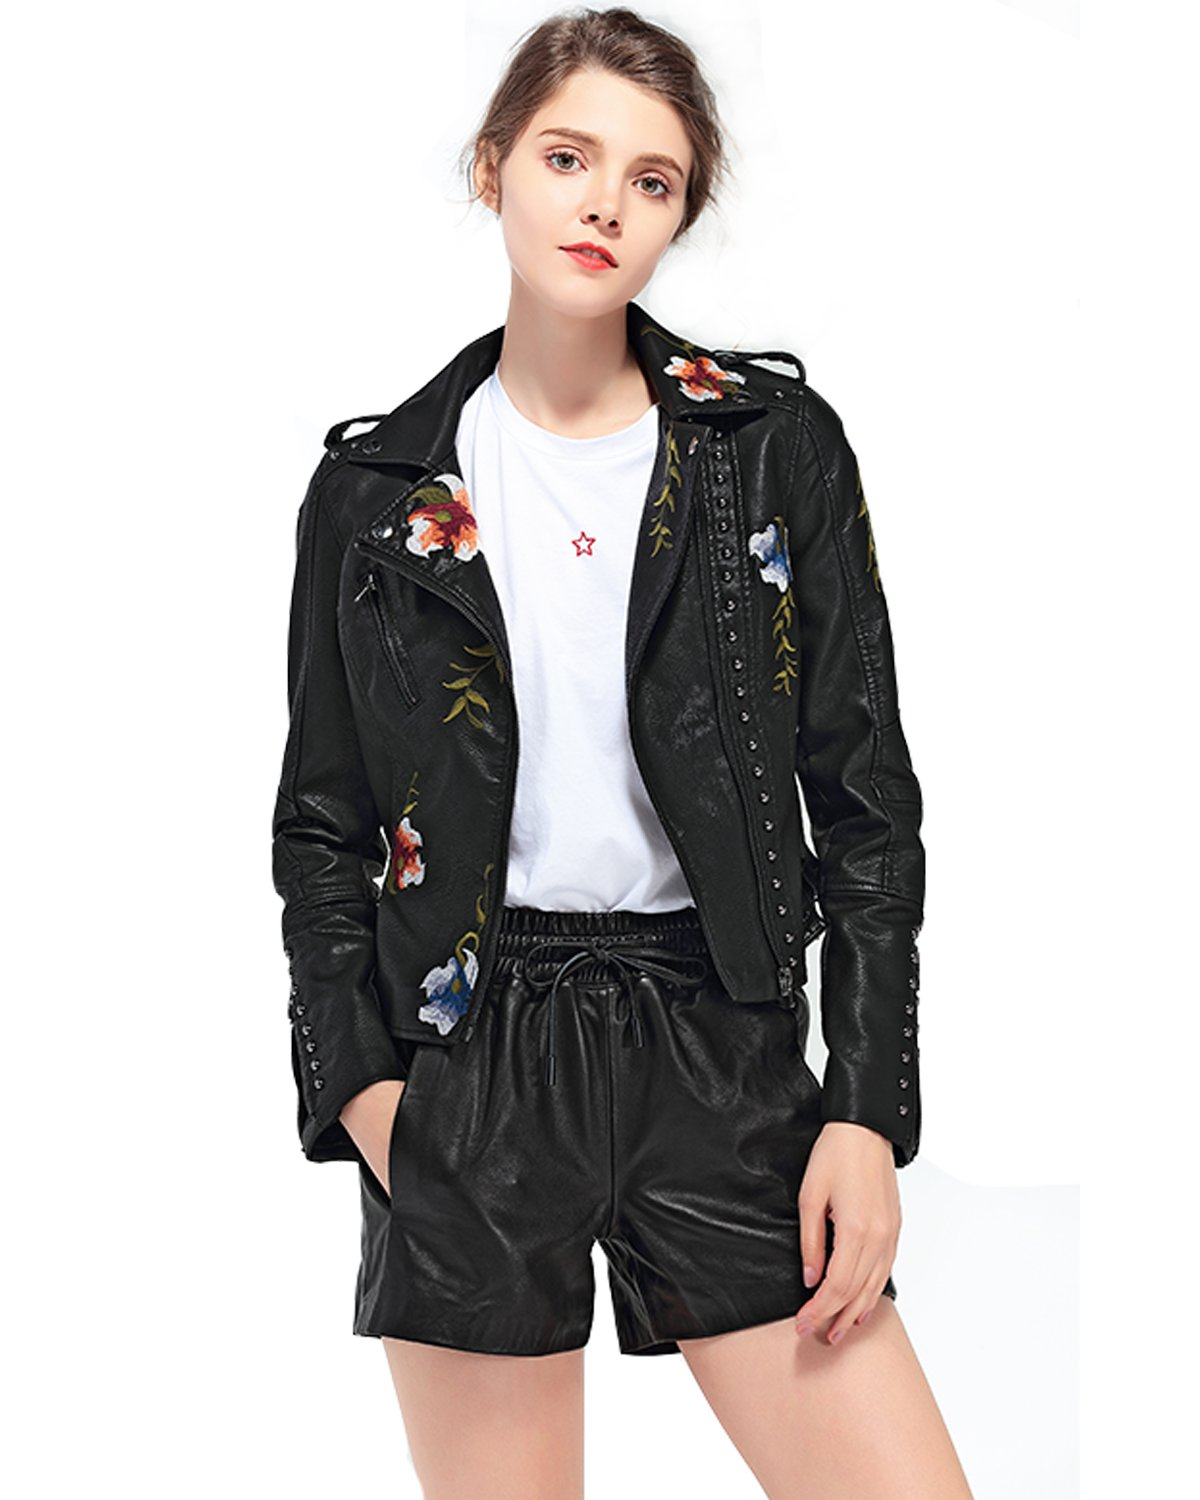 Fitaylor Women's Floral Embroidered Faux Leather Moto PU Jacket Coat (L, Black) by Fitaylor